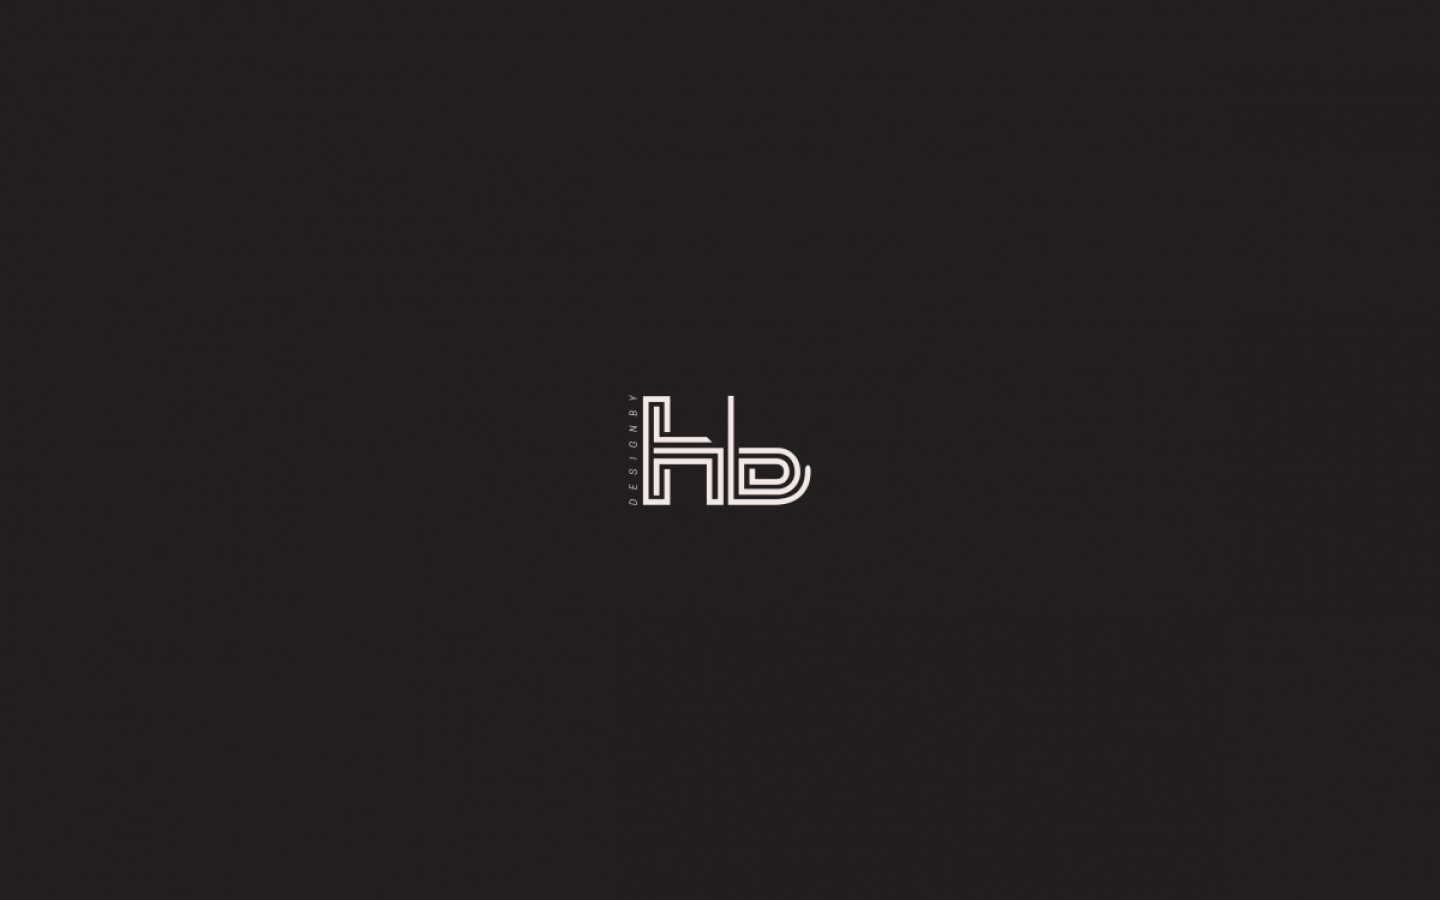 VISUAL IDENTITY - DESIGN BY HB